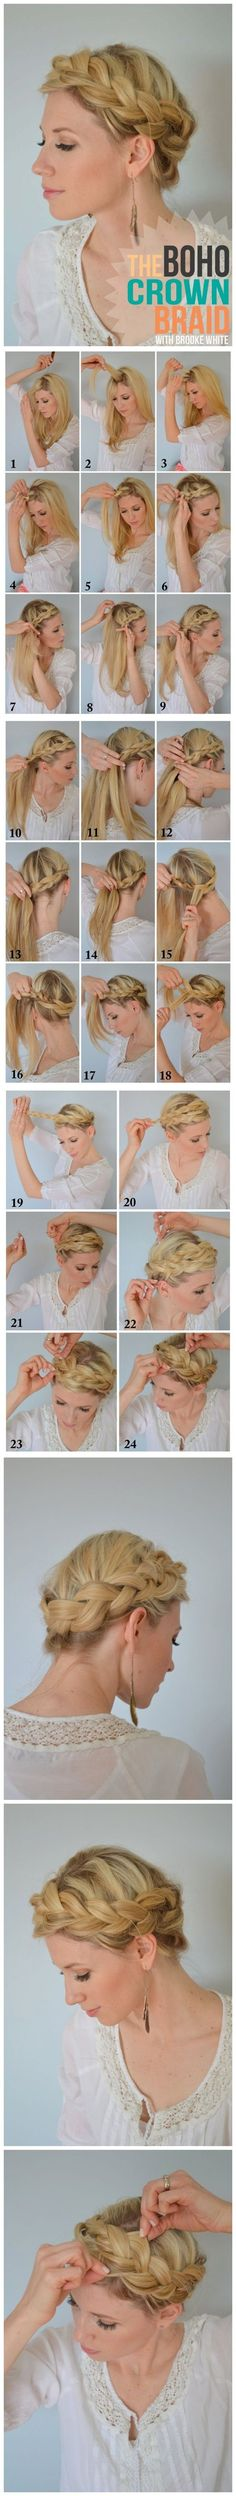 How To Make Boho Crown Braid Tutorial